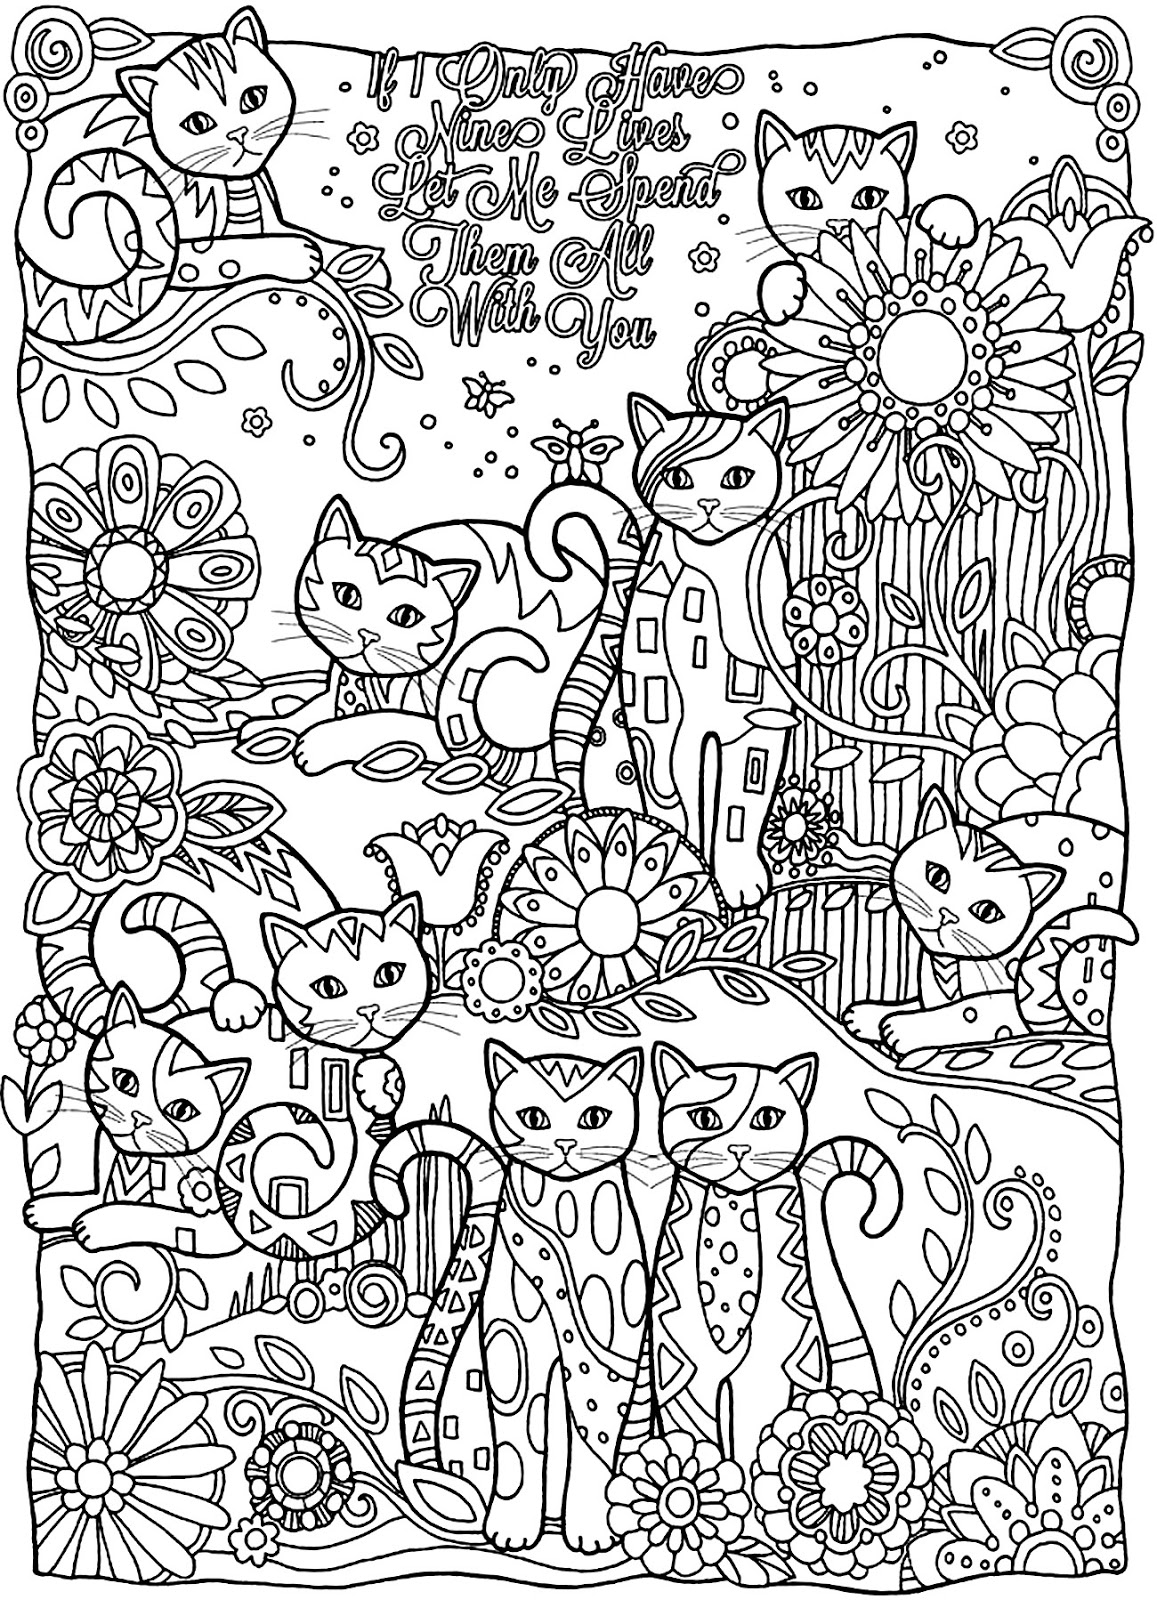 Hard Cat Saying Coloring Page for Adults